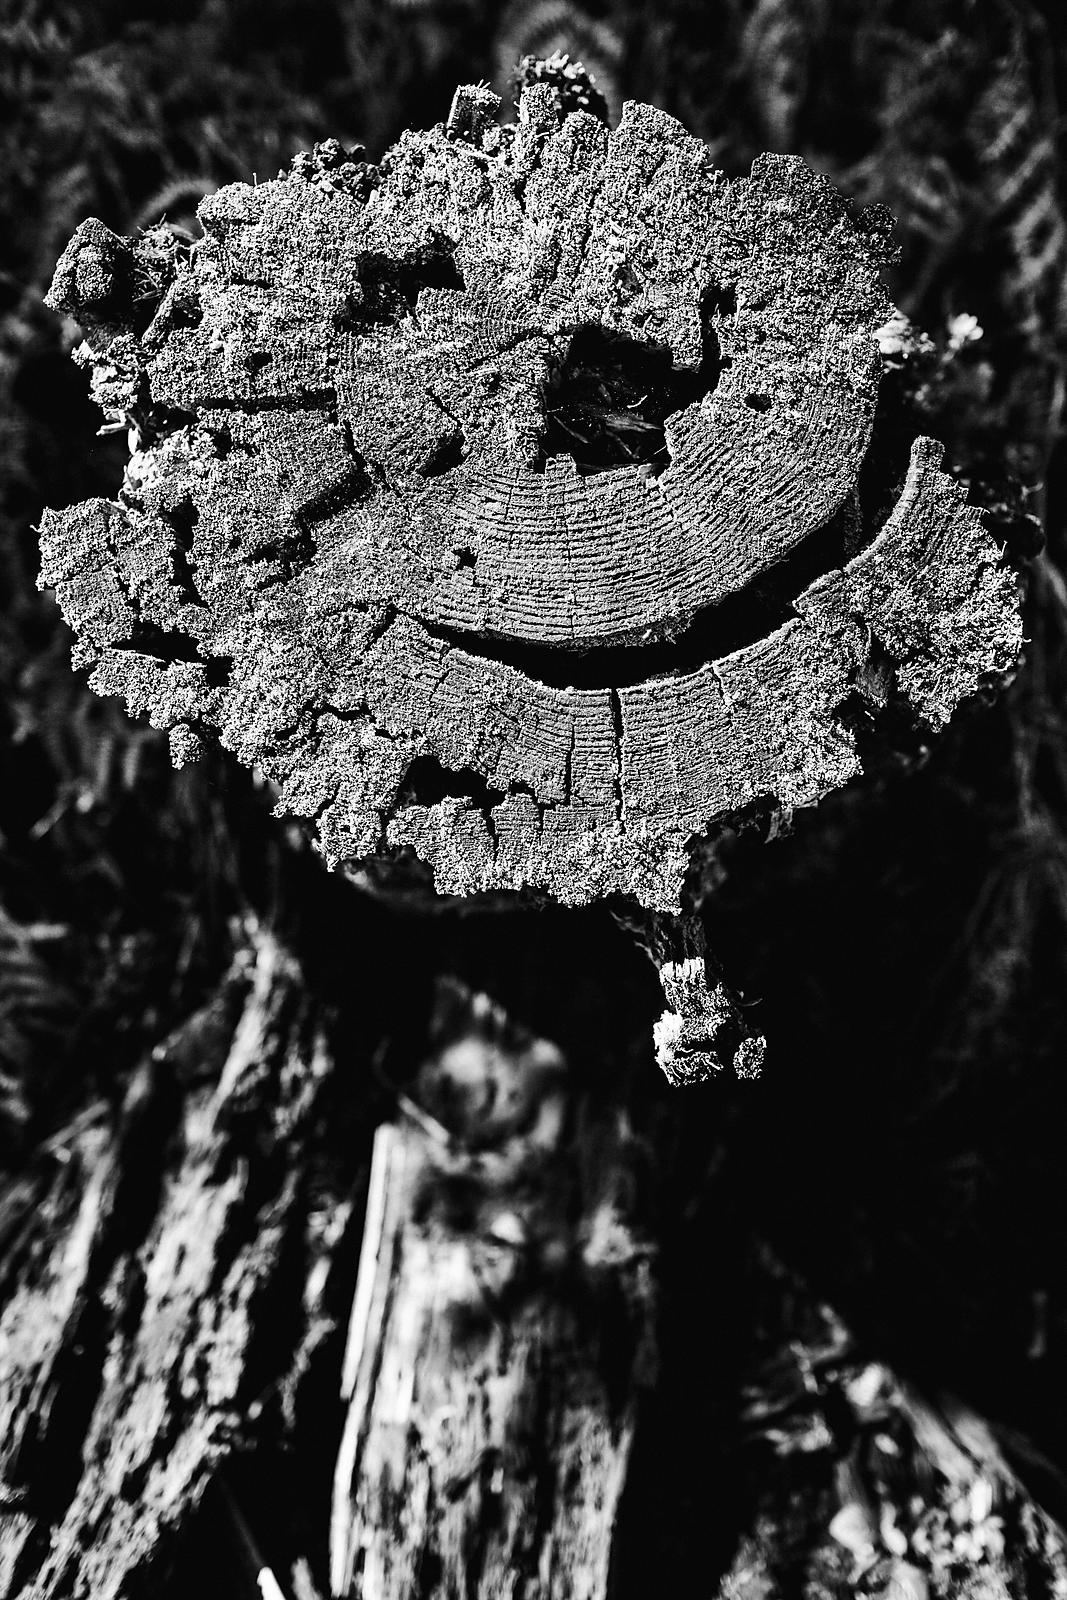 Now, even the nature use smileys